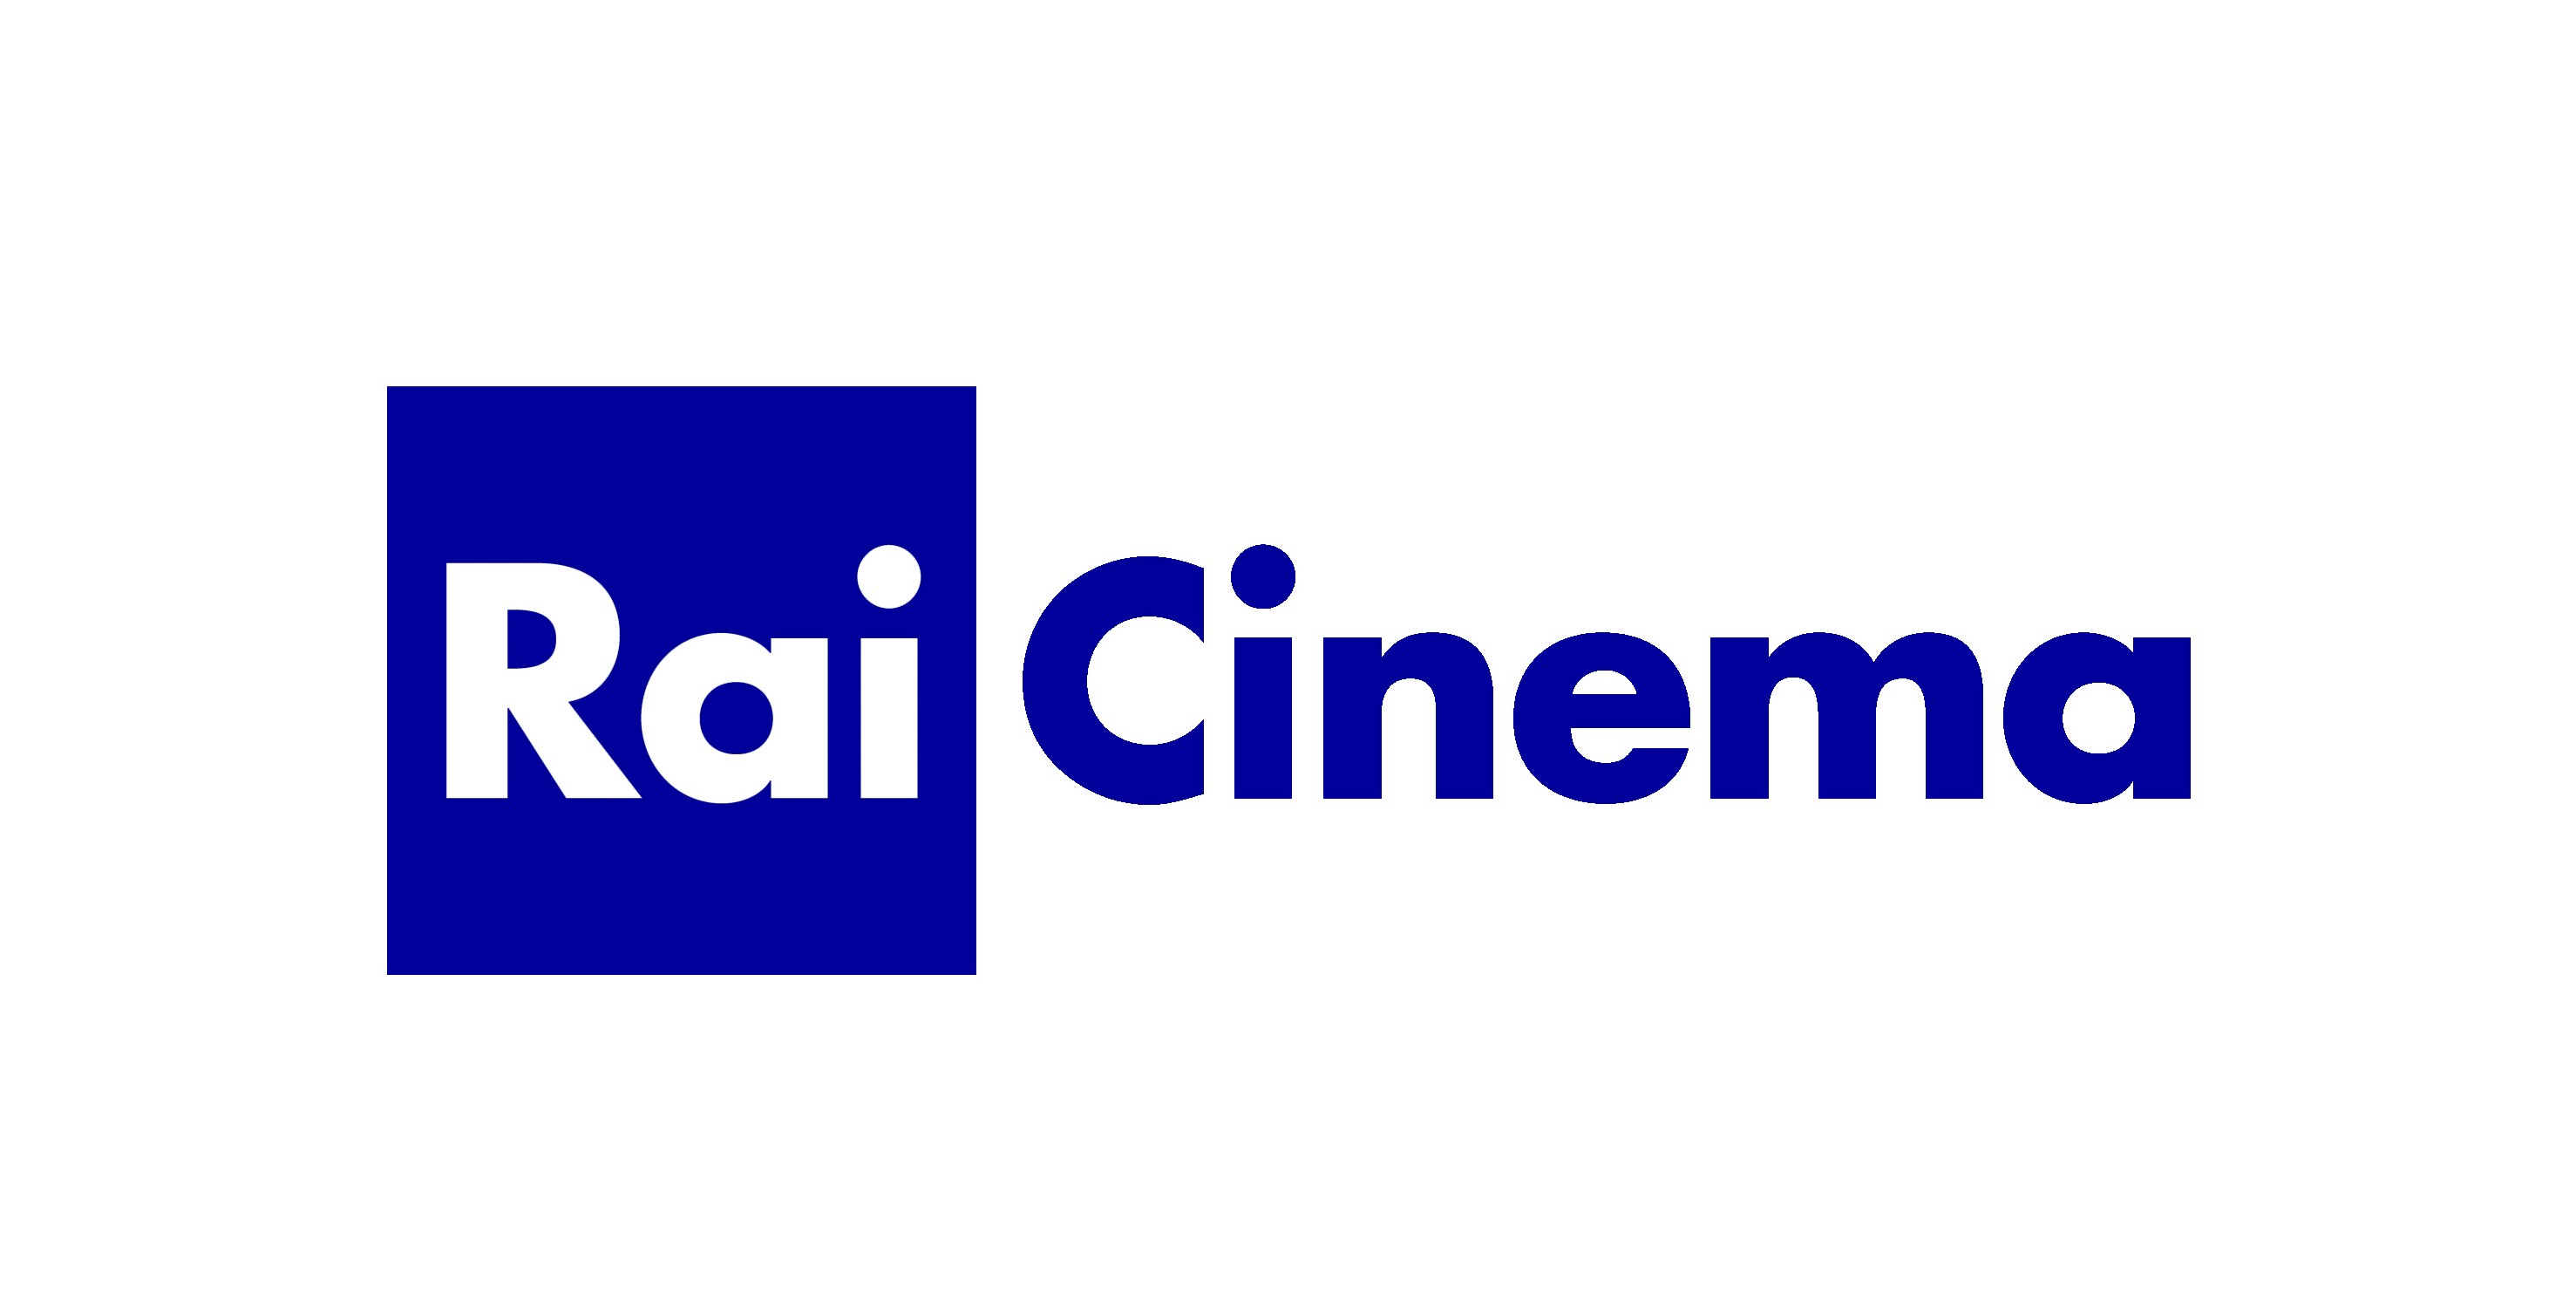 Accordo Rai Cinema e Sony Interactive Entertainment